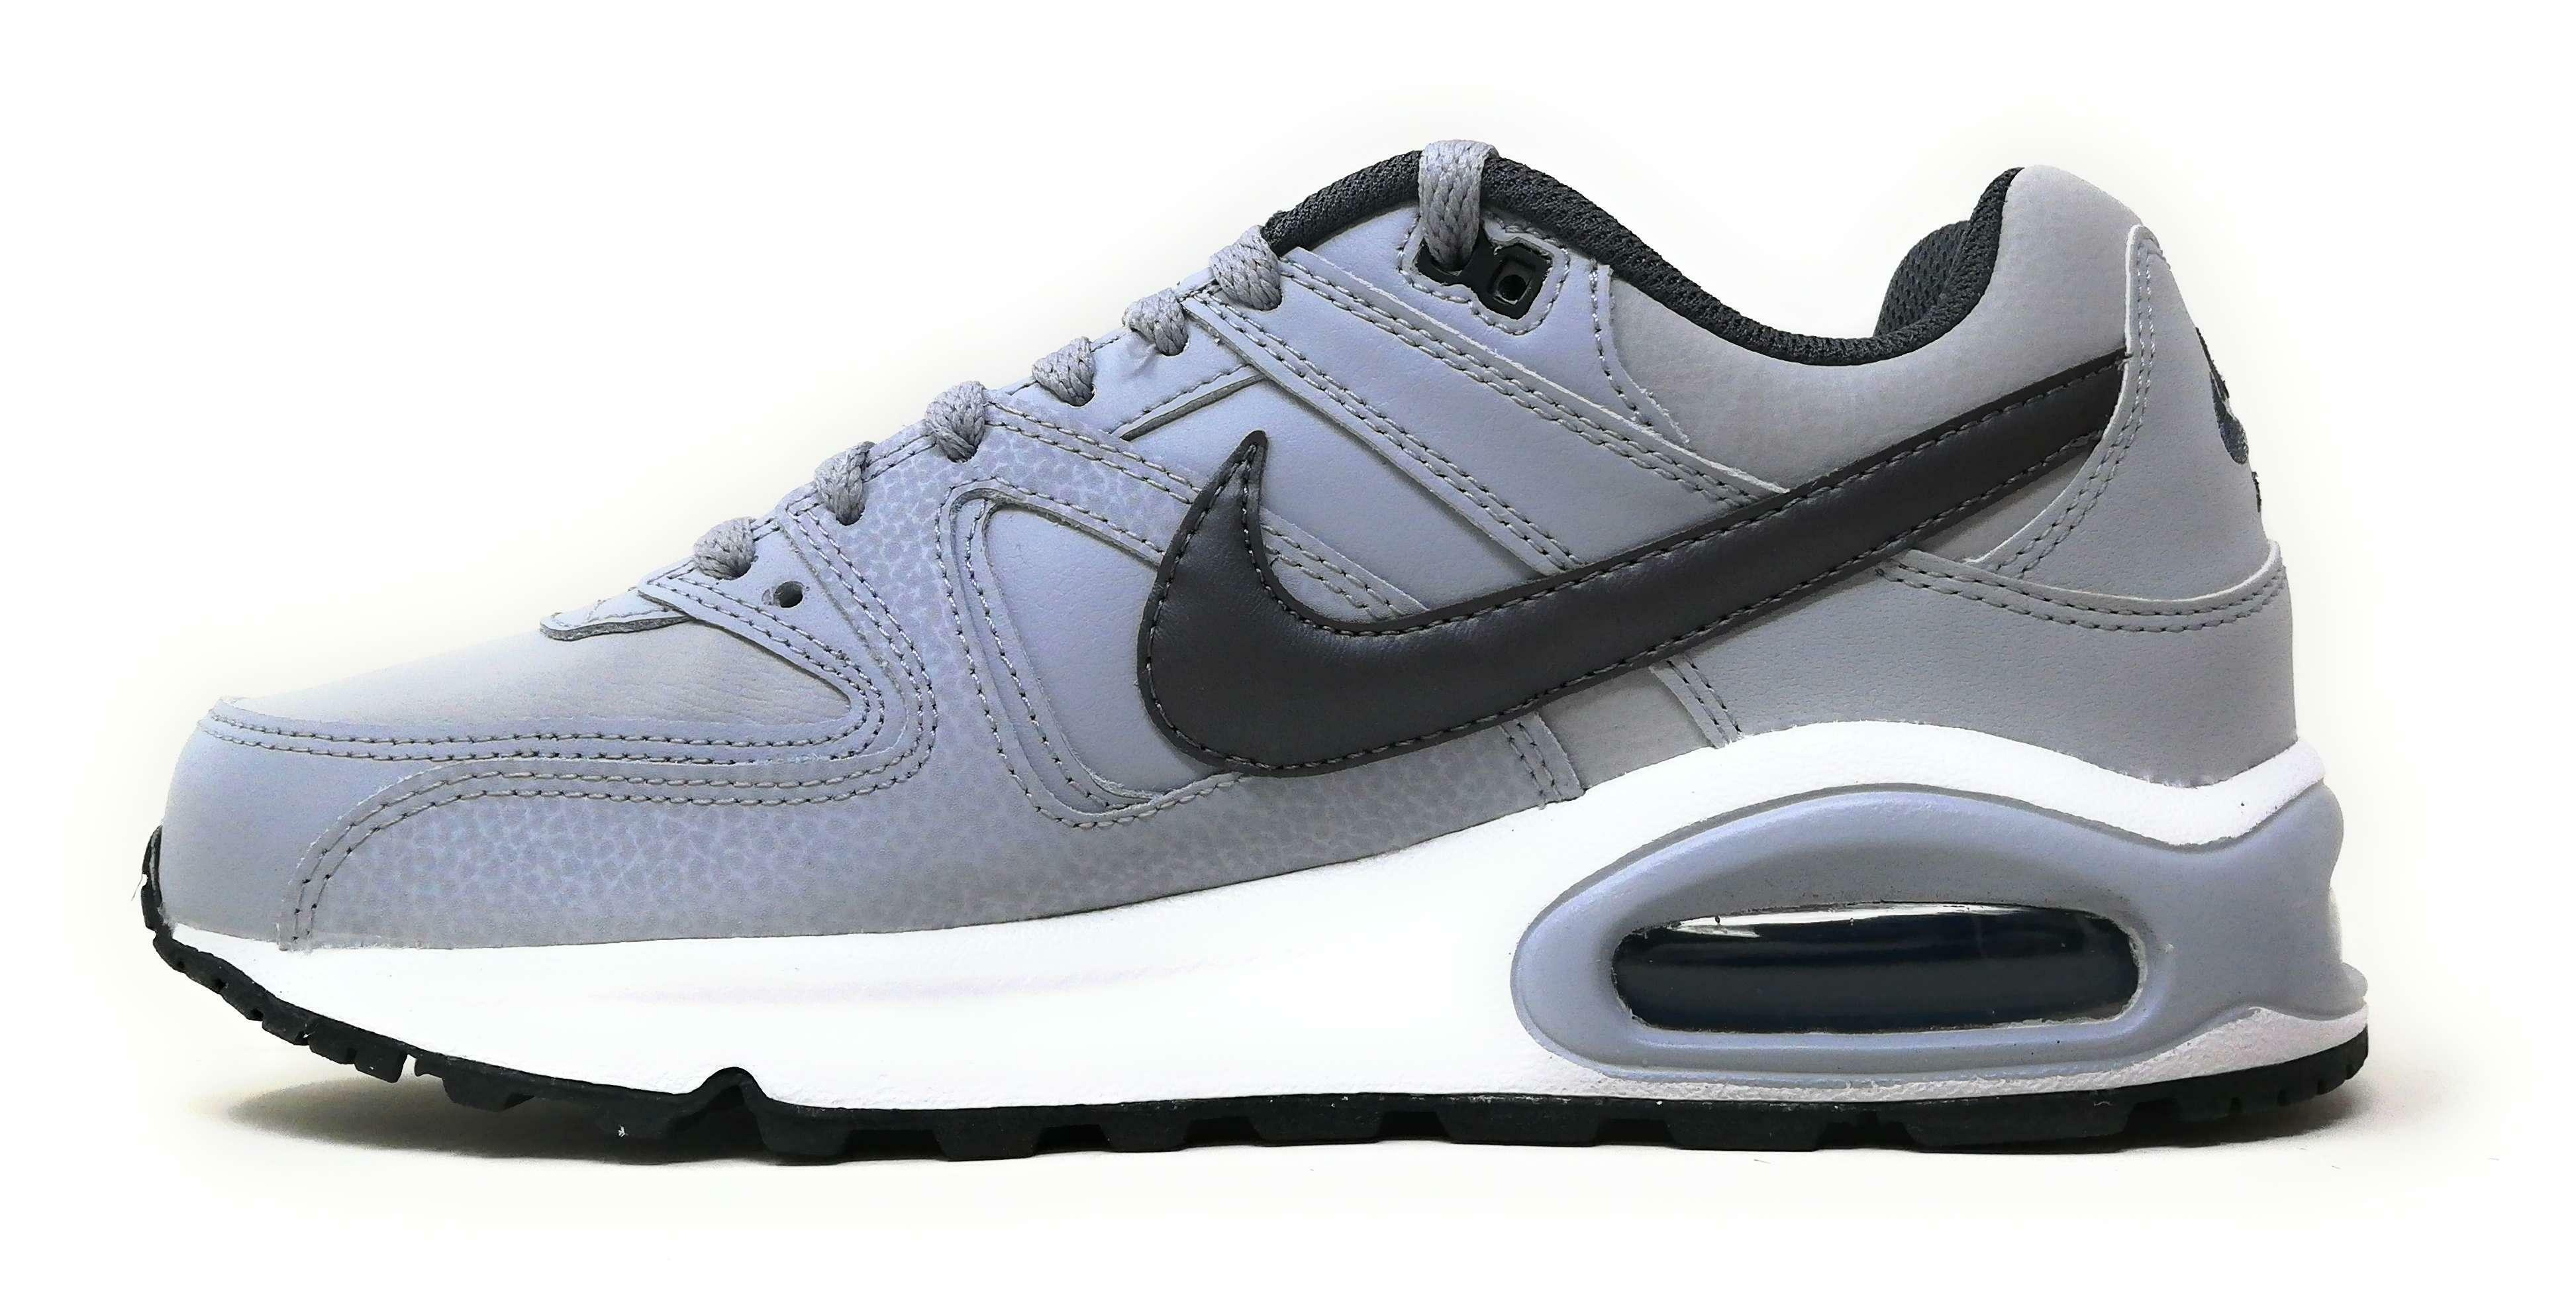 nike air max command leather nike 749760 012 grigio